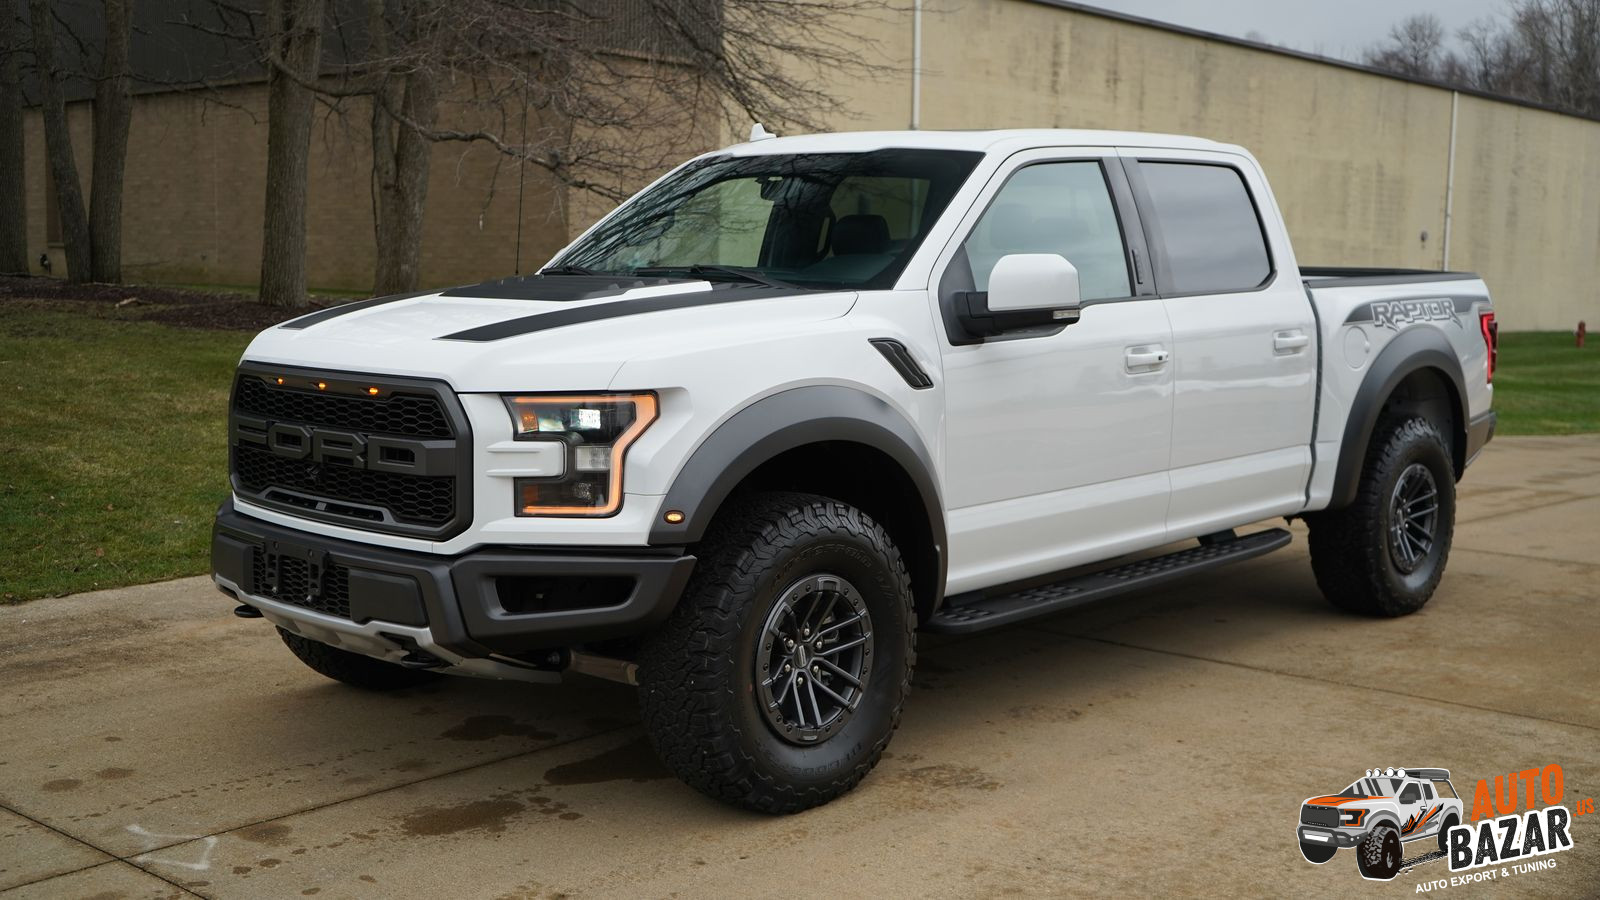 /storage/inventories/1096/1096 2019 Ford f-150 raptor white in stock (1).JPG